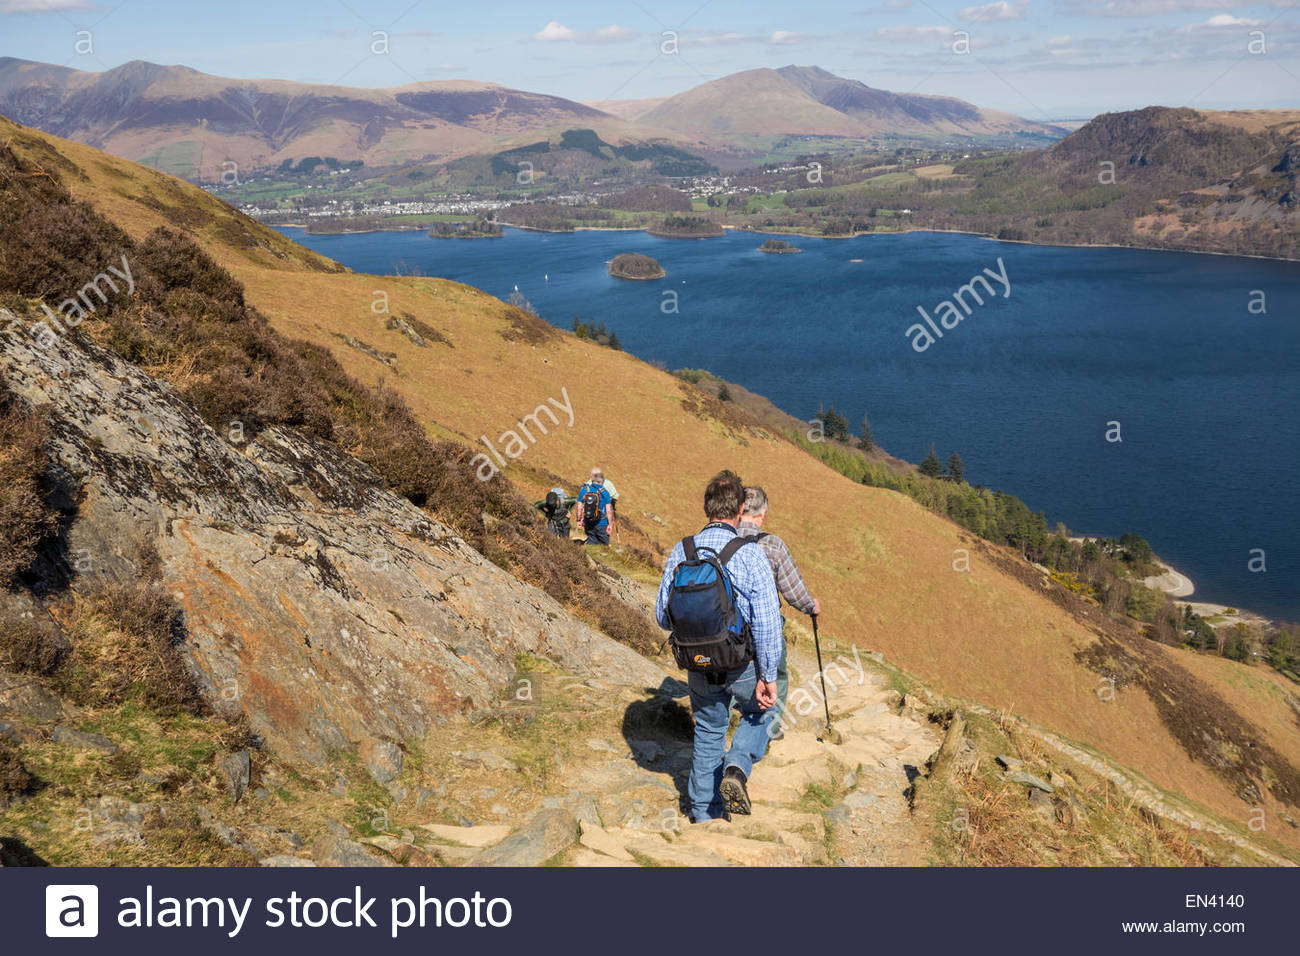 Walkers descending a steep rocky path on the way down off Catbells in the Lake District, with Derwentwater and the - Stock Image